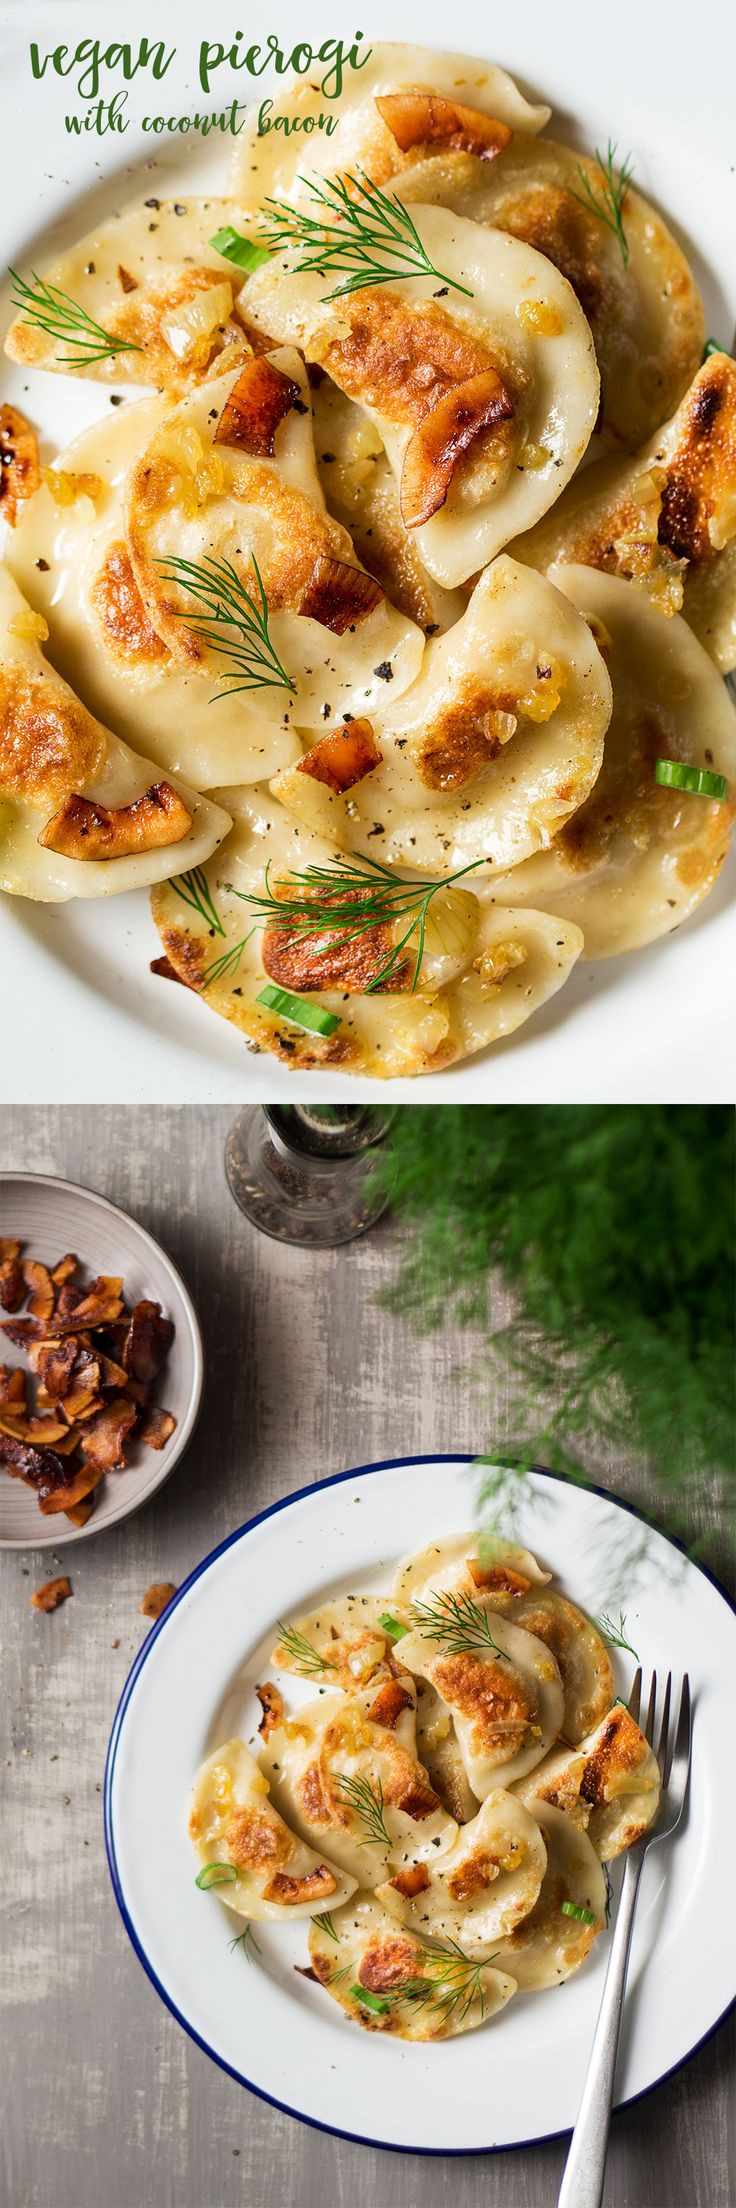 #vegan #pierogi with #coconutbacon is a #plantbased version of this #Polish #classic. Perfect #comfortfood for cold #winter weather. #recipe #recipes #polishfood #coconut #veganbacon #crueltyfree #vegetarian #entree #dinner #dumplings #pierogis